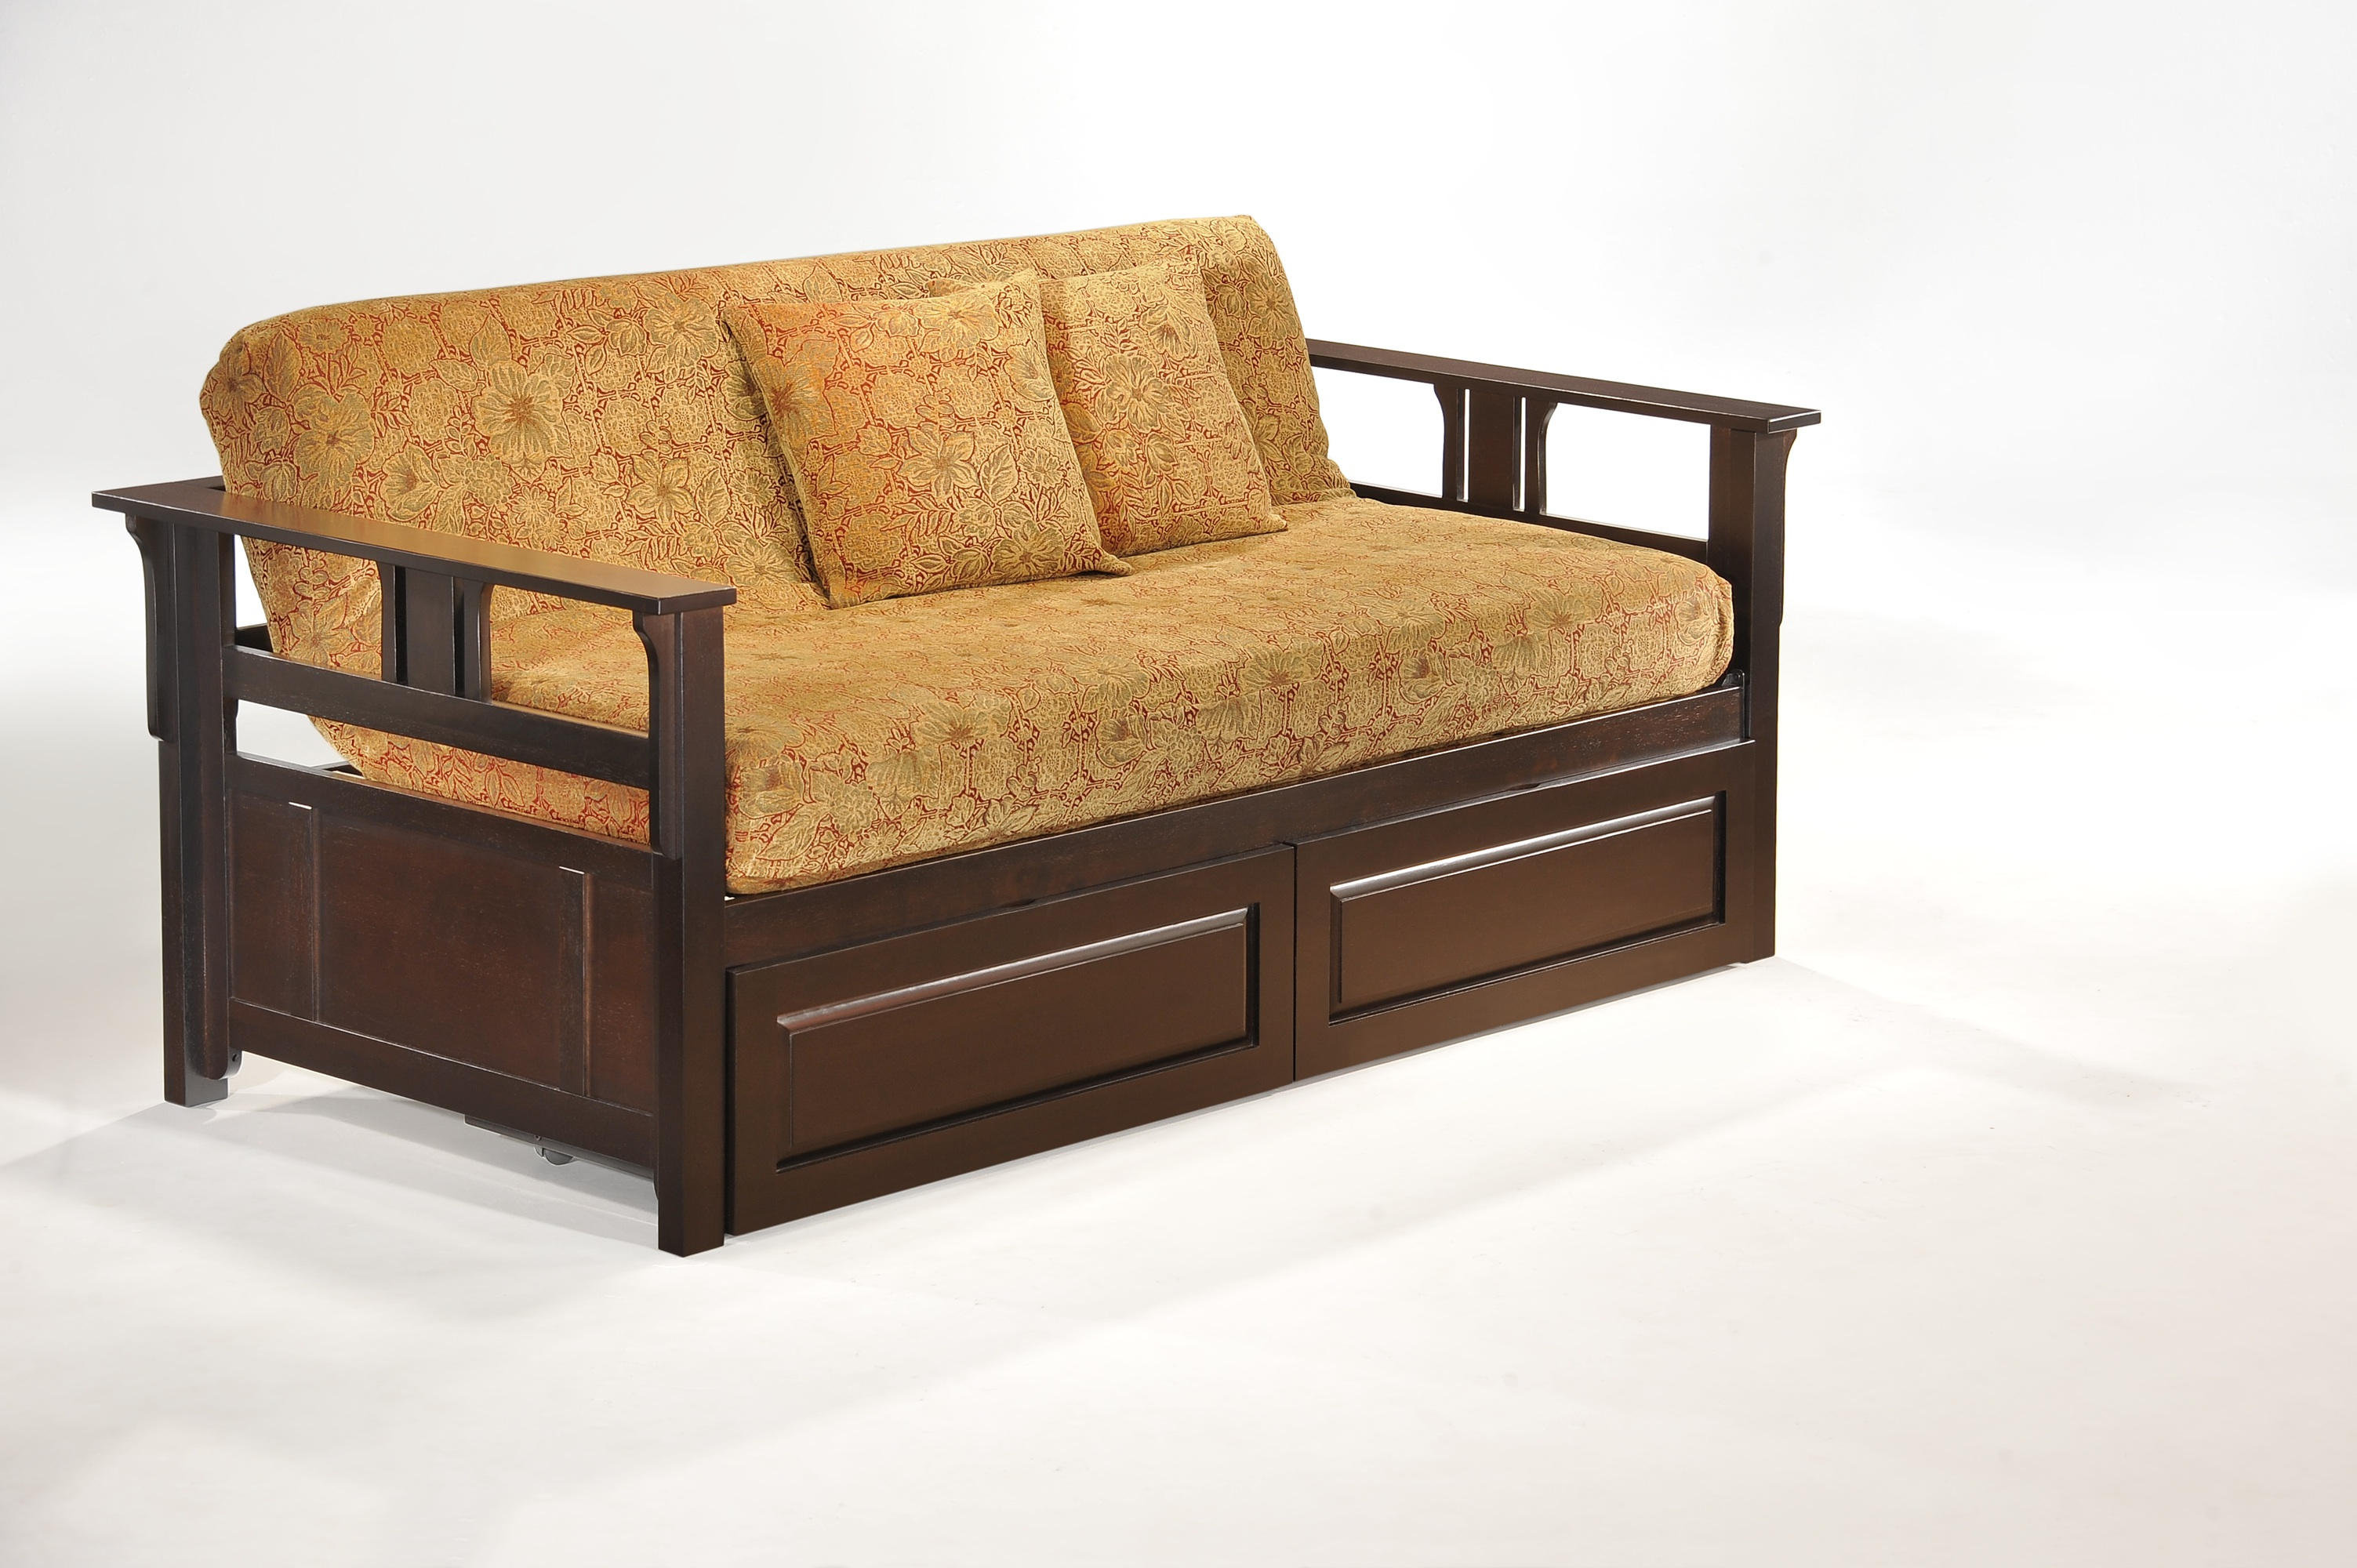 Teddy Roosevelt Daybed Frame Iowa City Futon Shop